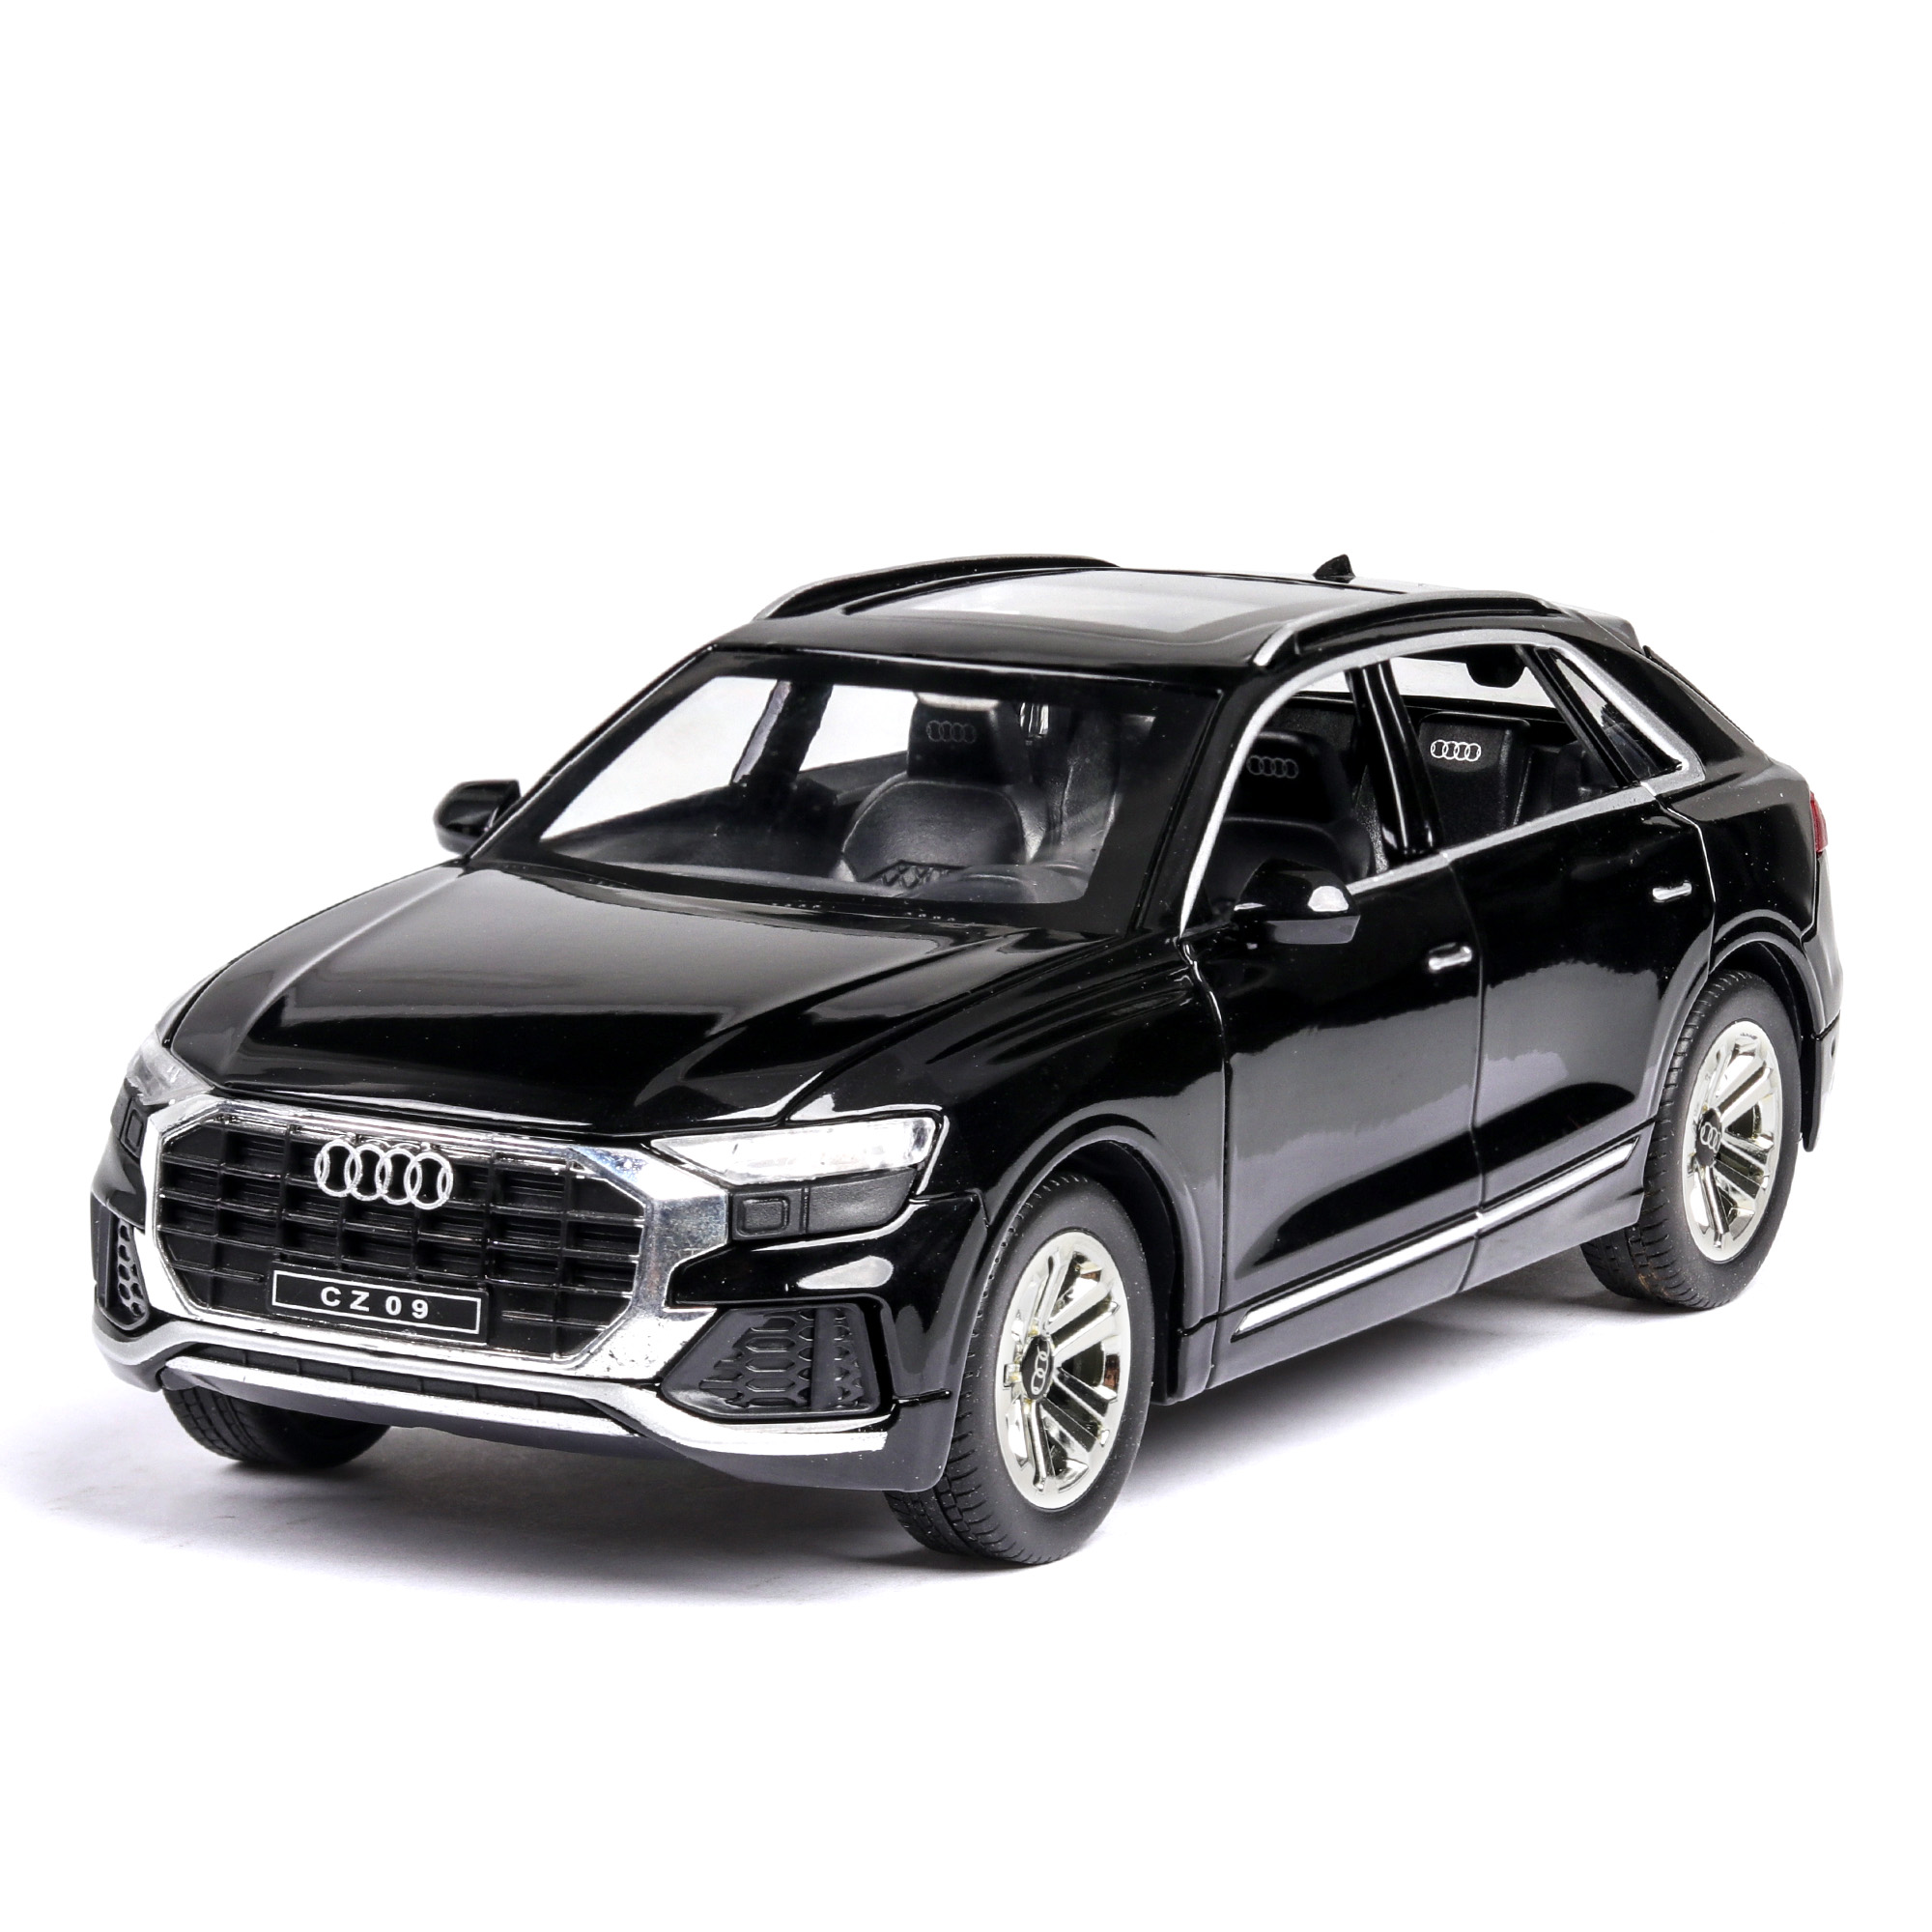 Audi Q8 with Sound and Lights Model Car 31